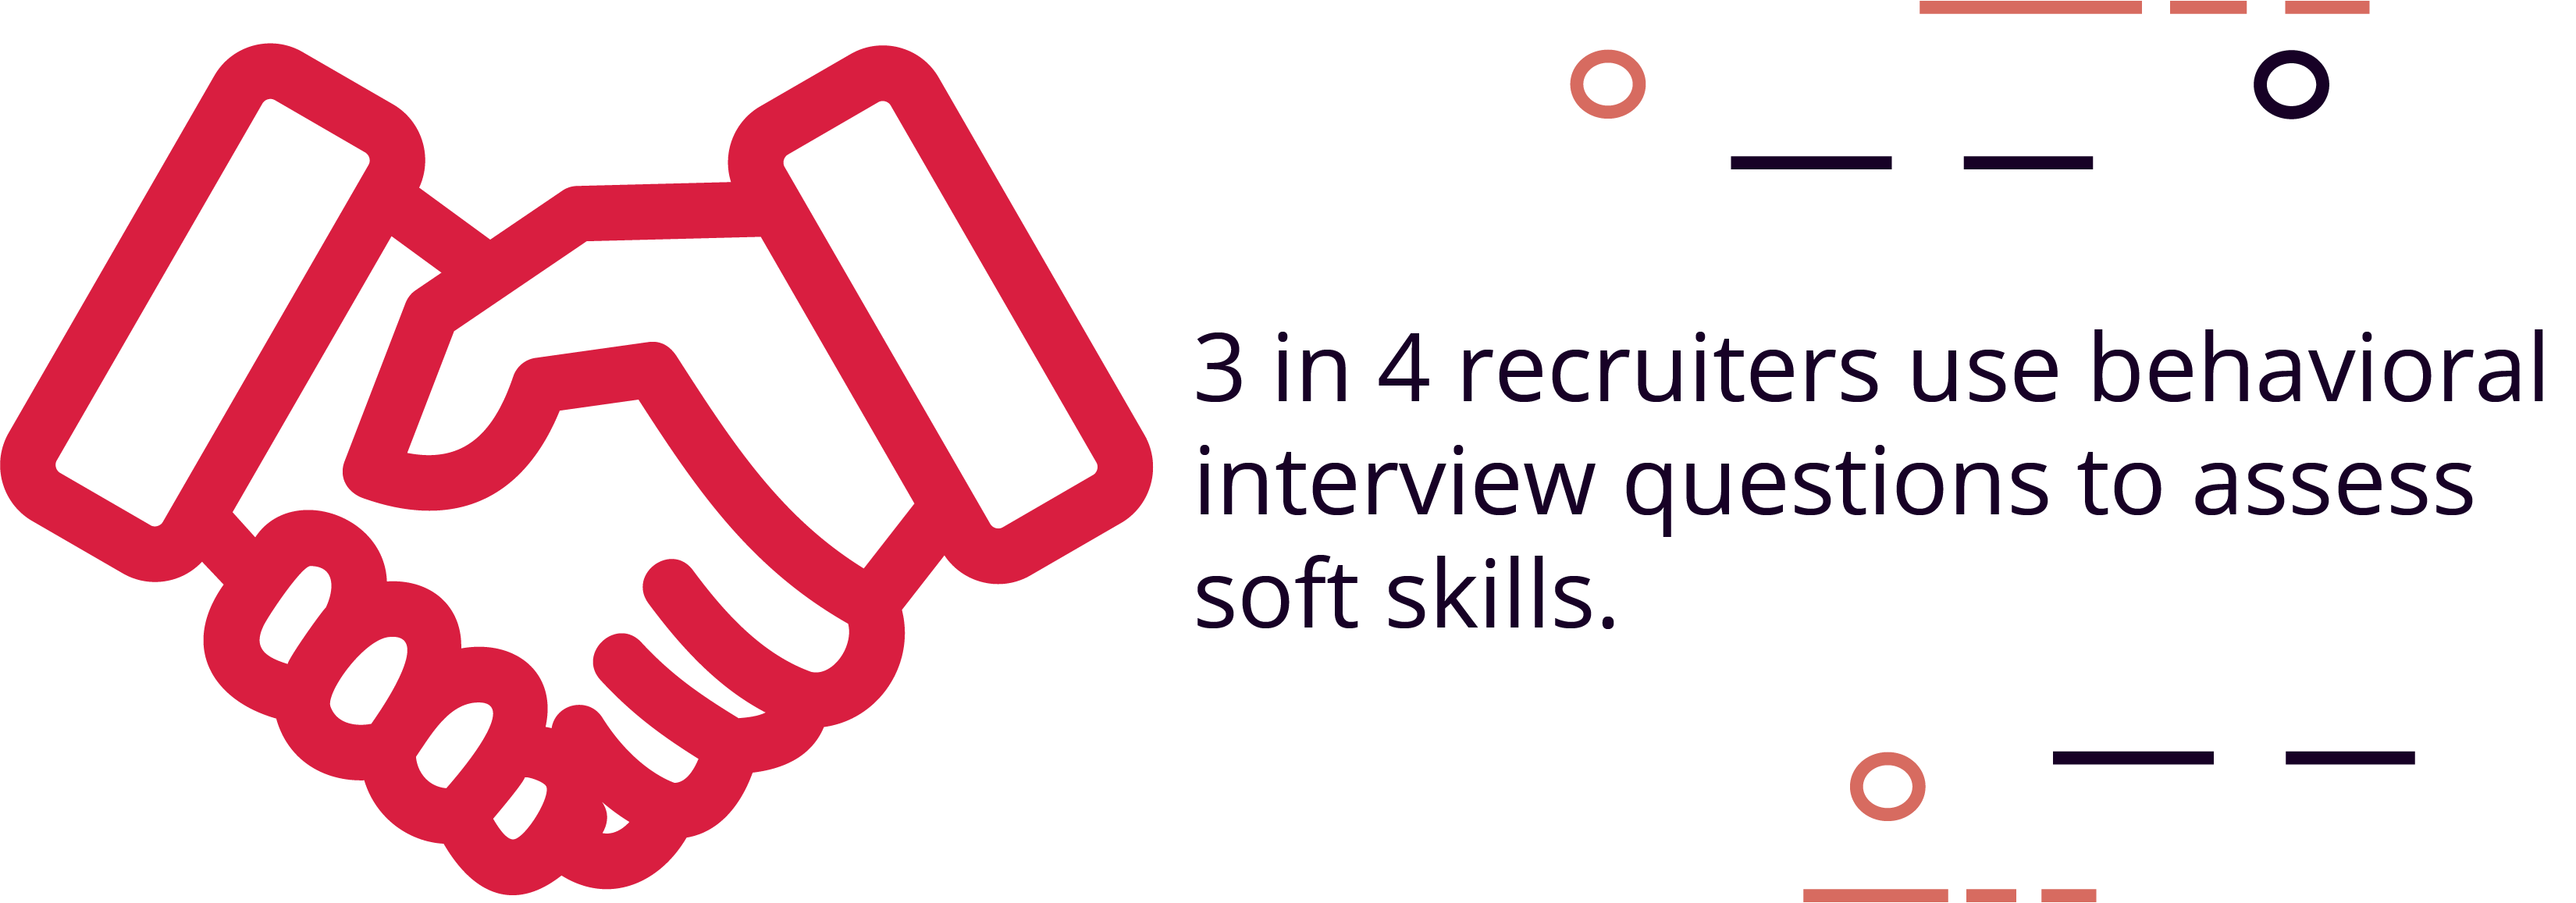 3 in 4 recruiters use behavioral interview questions to assess soft skills